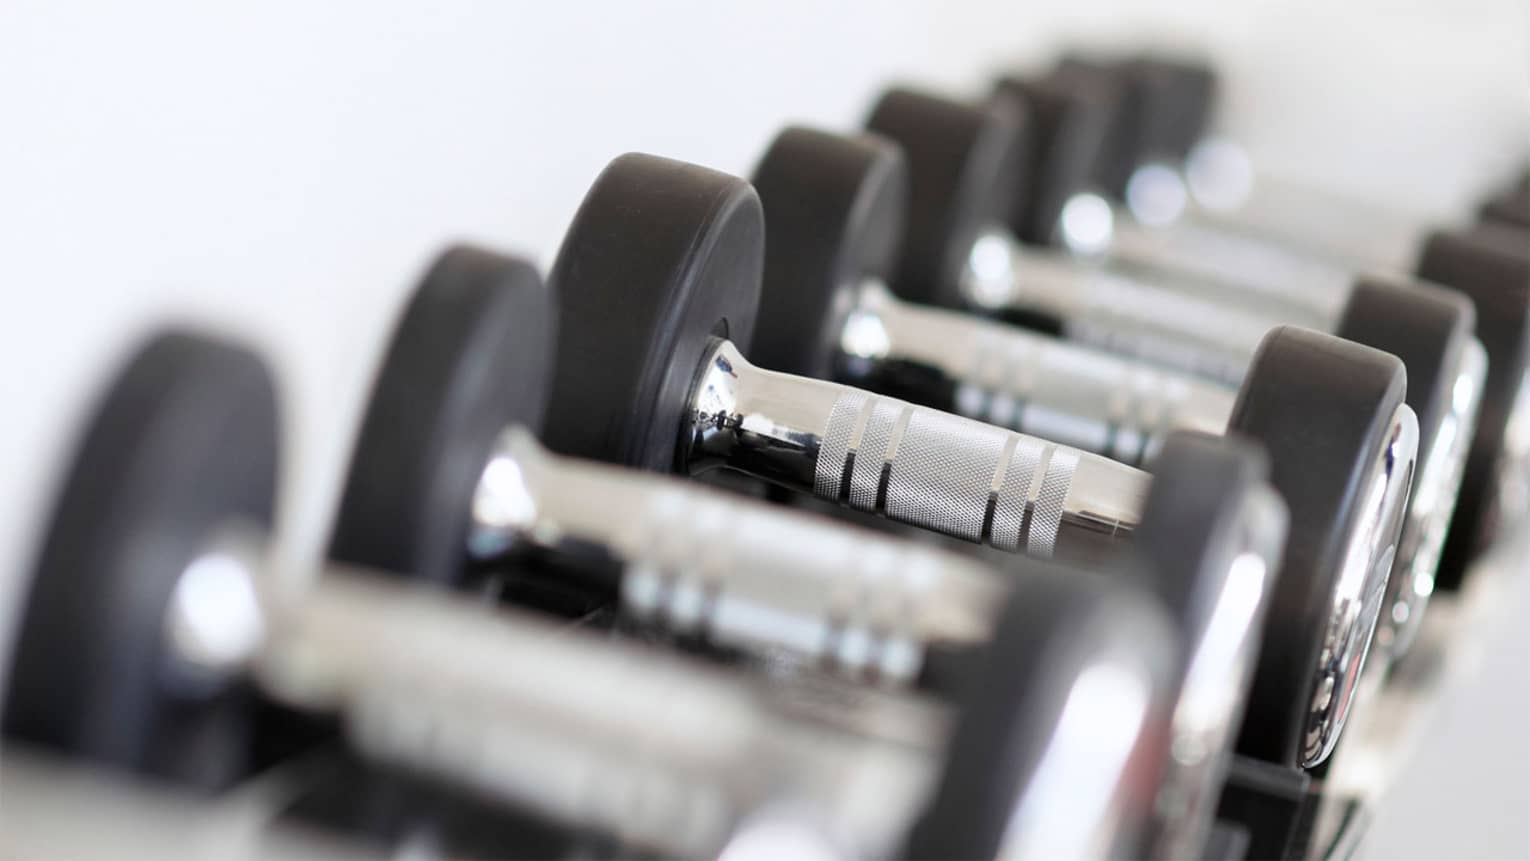 Close-up of hand weights in row on rack in Fitness Centre